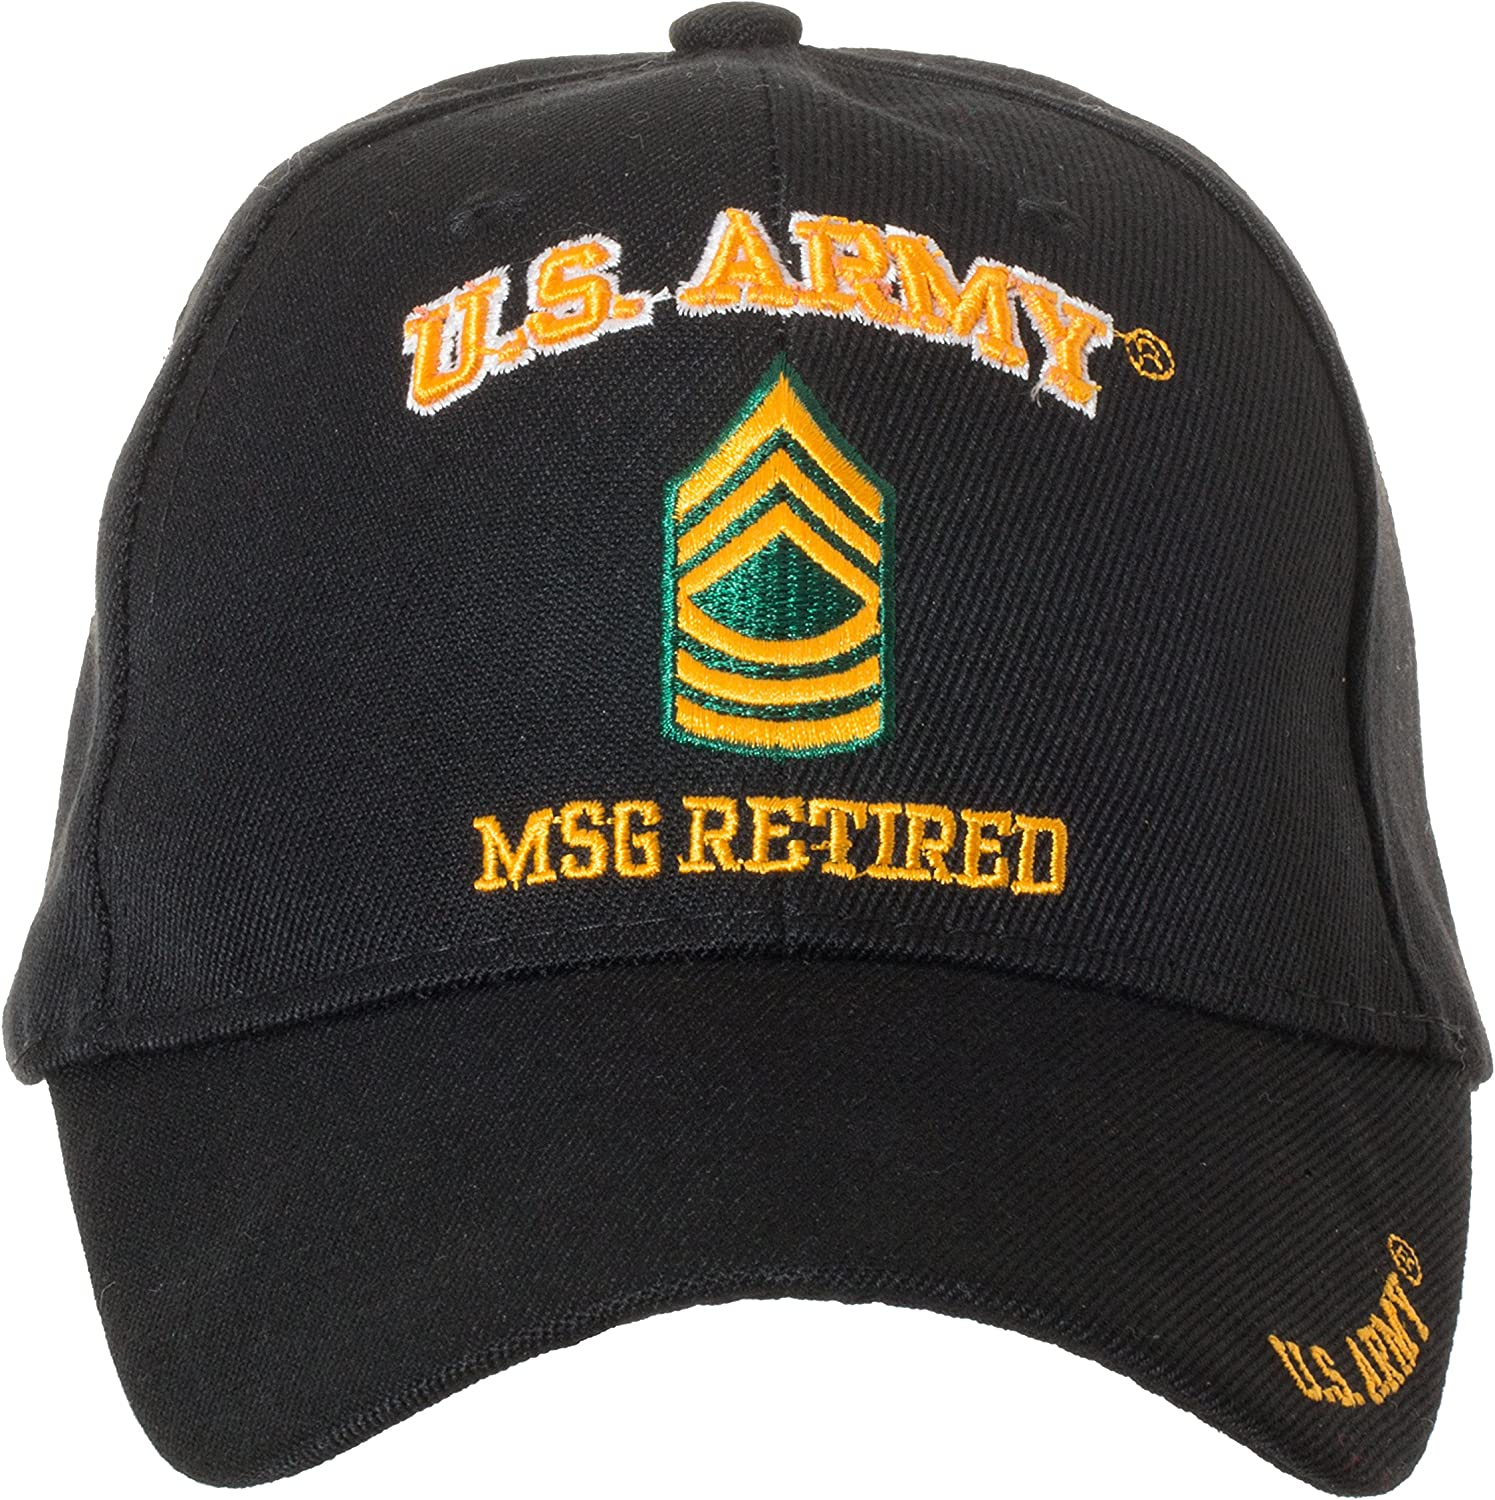 32b58193c534a4 Artisan Owl Owl Owl Officially Licensed US Army Retired Baseball Cap -  Multiple Ranks Available d304a5